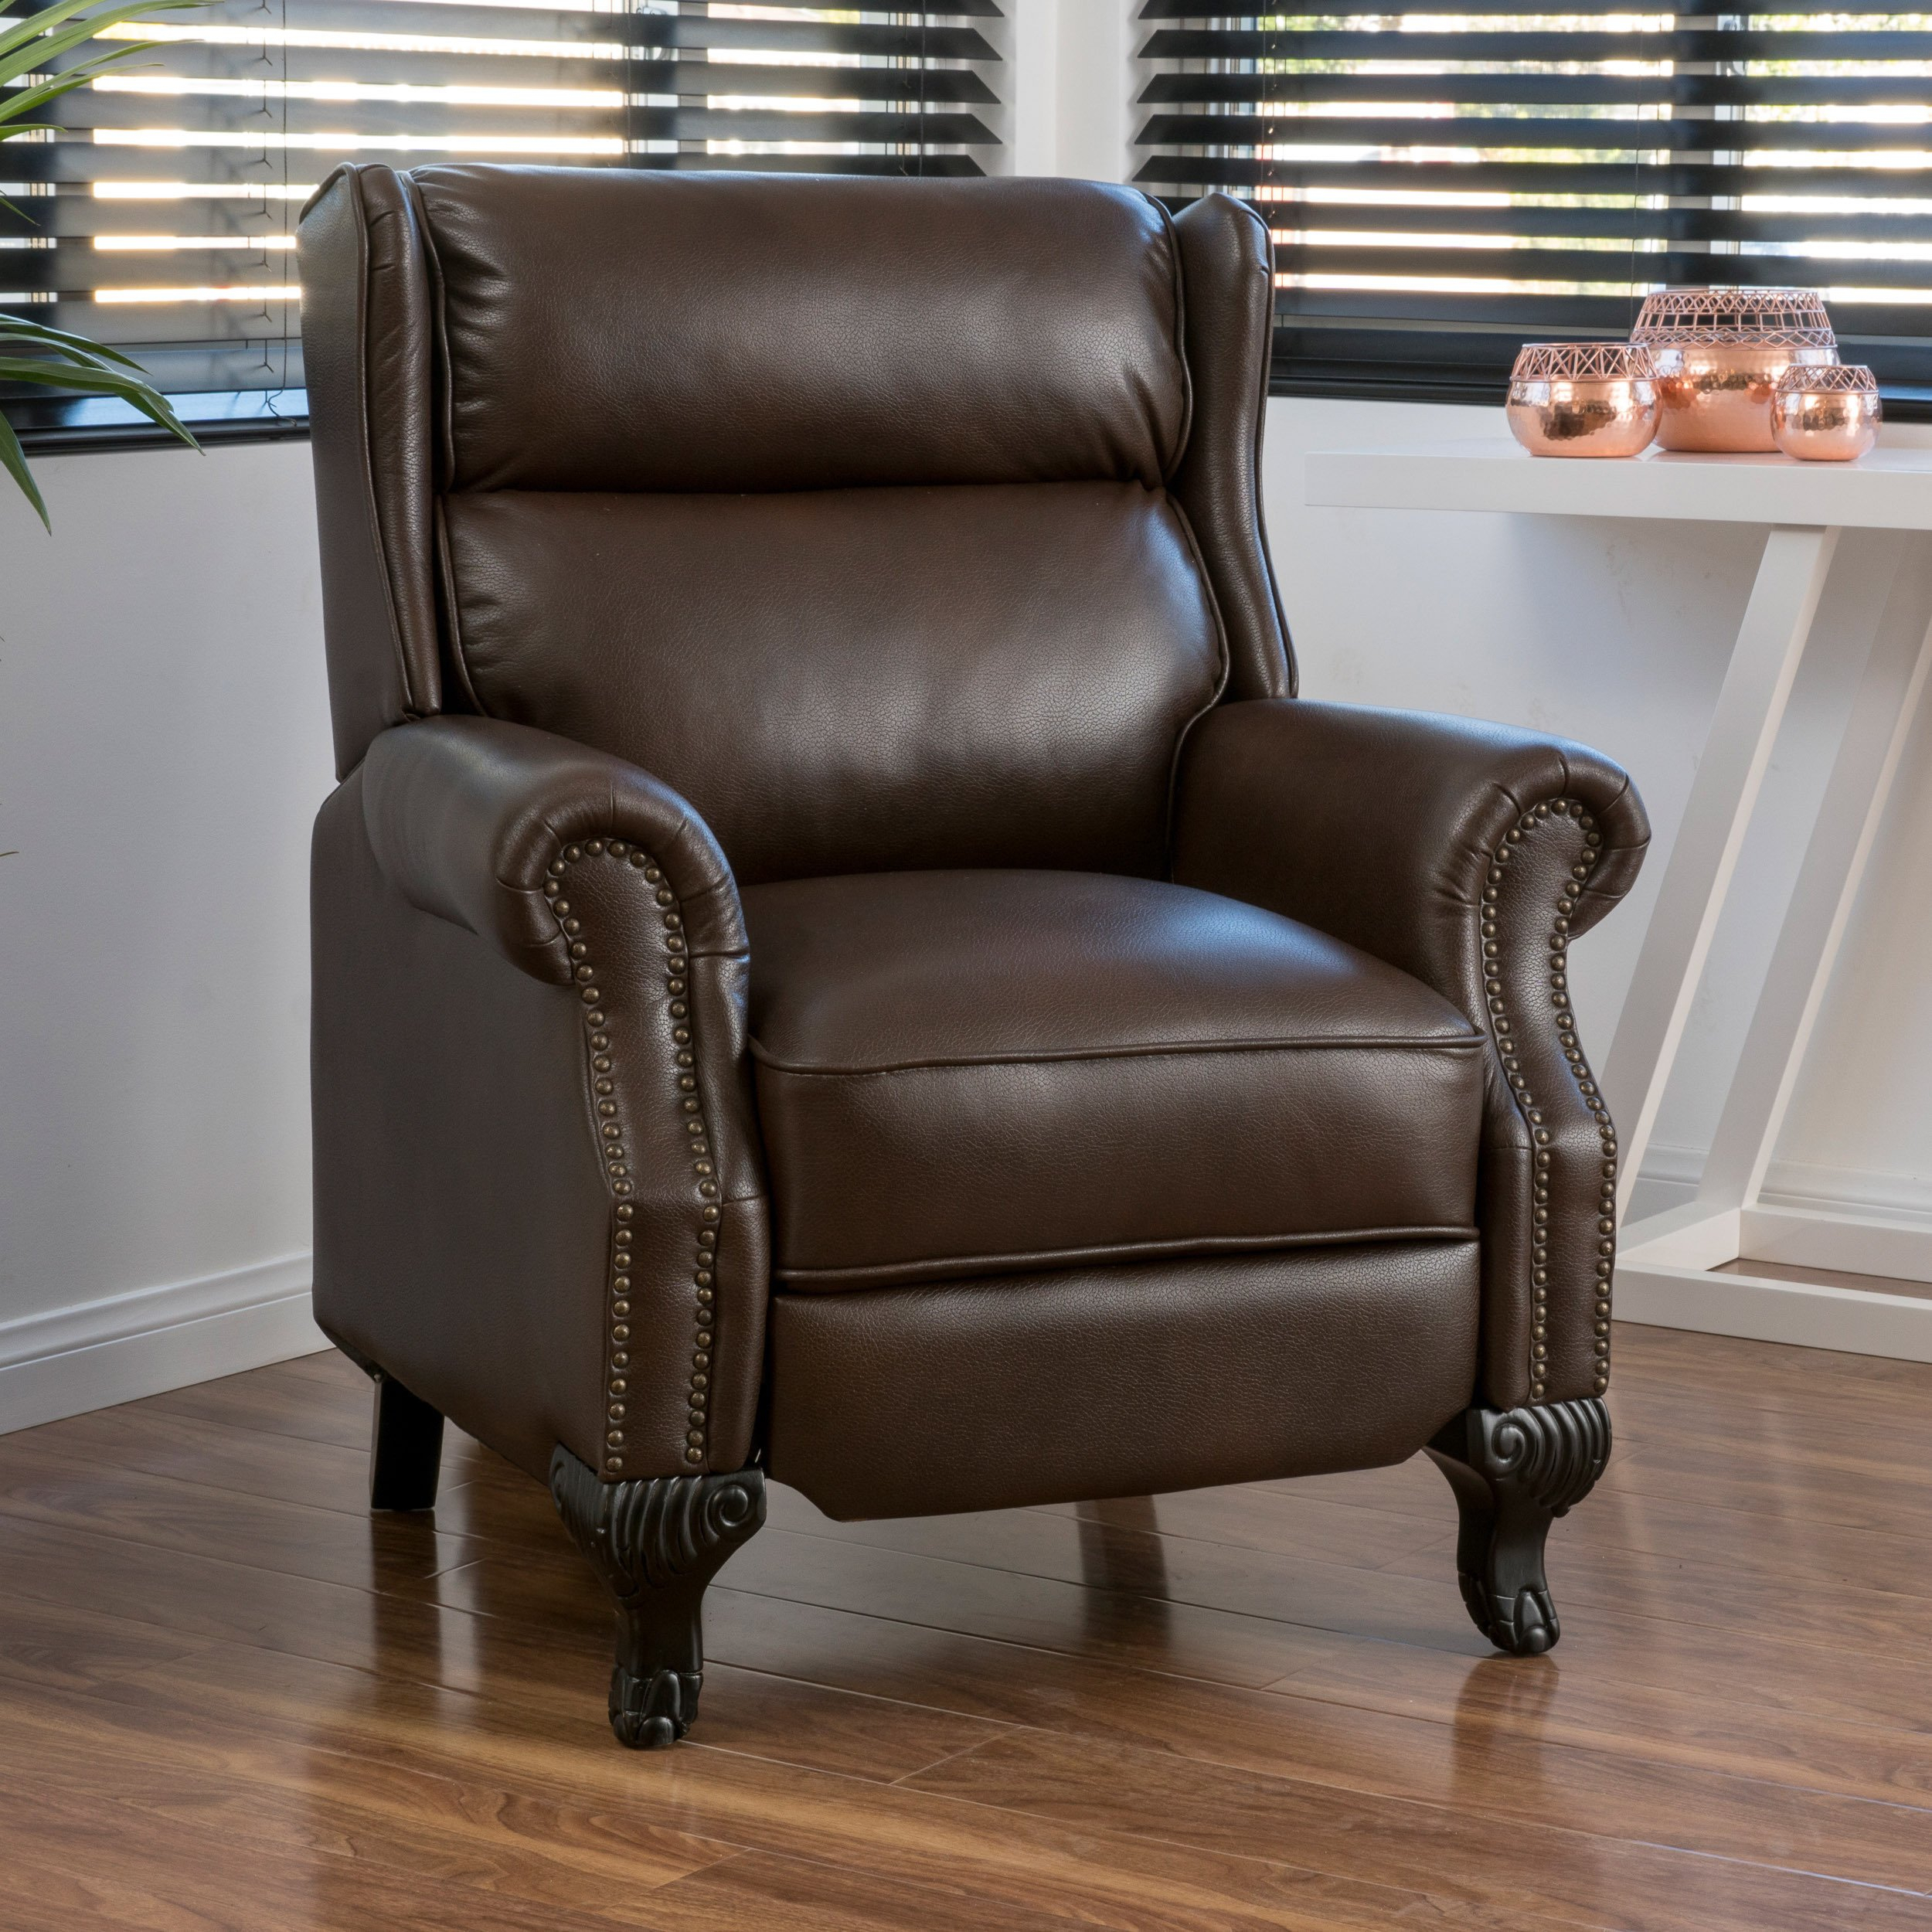 Buy Brown Christopher Knight Home Living Room Chairs Online At Intended For Dale Iii Polyurethane Swivel Glider Recliners (Image 4 of 25)